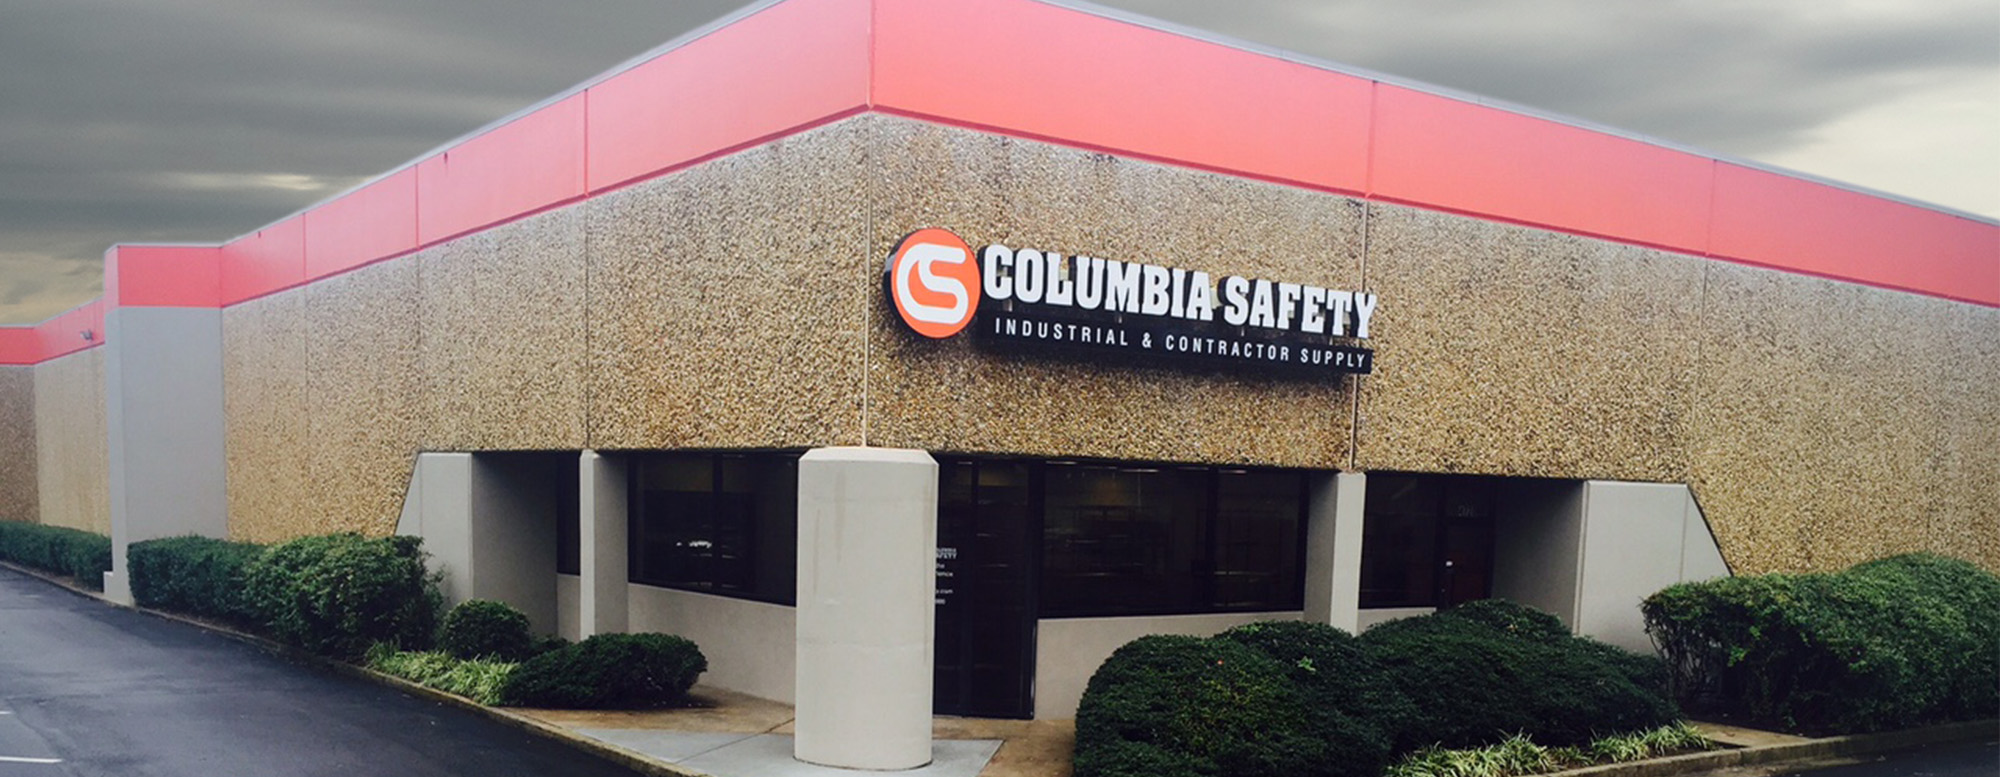 Columbia Safety and Supply's Storefront & Distribution Center located in Atlanta, GA